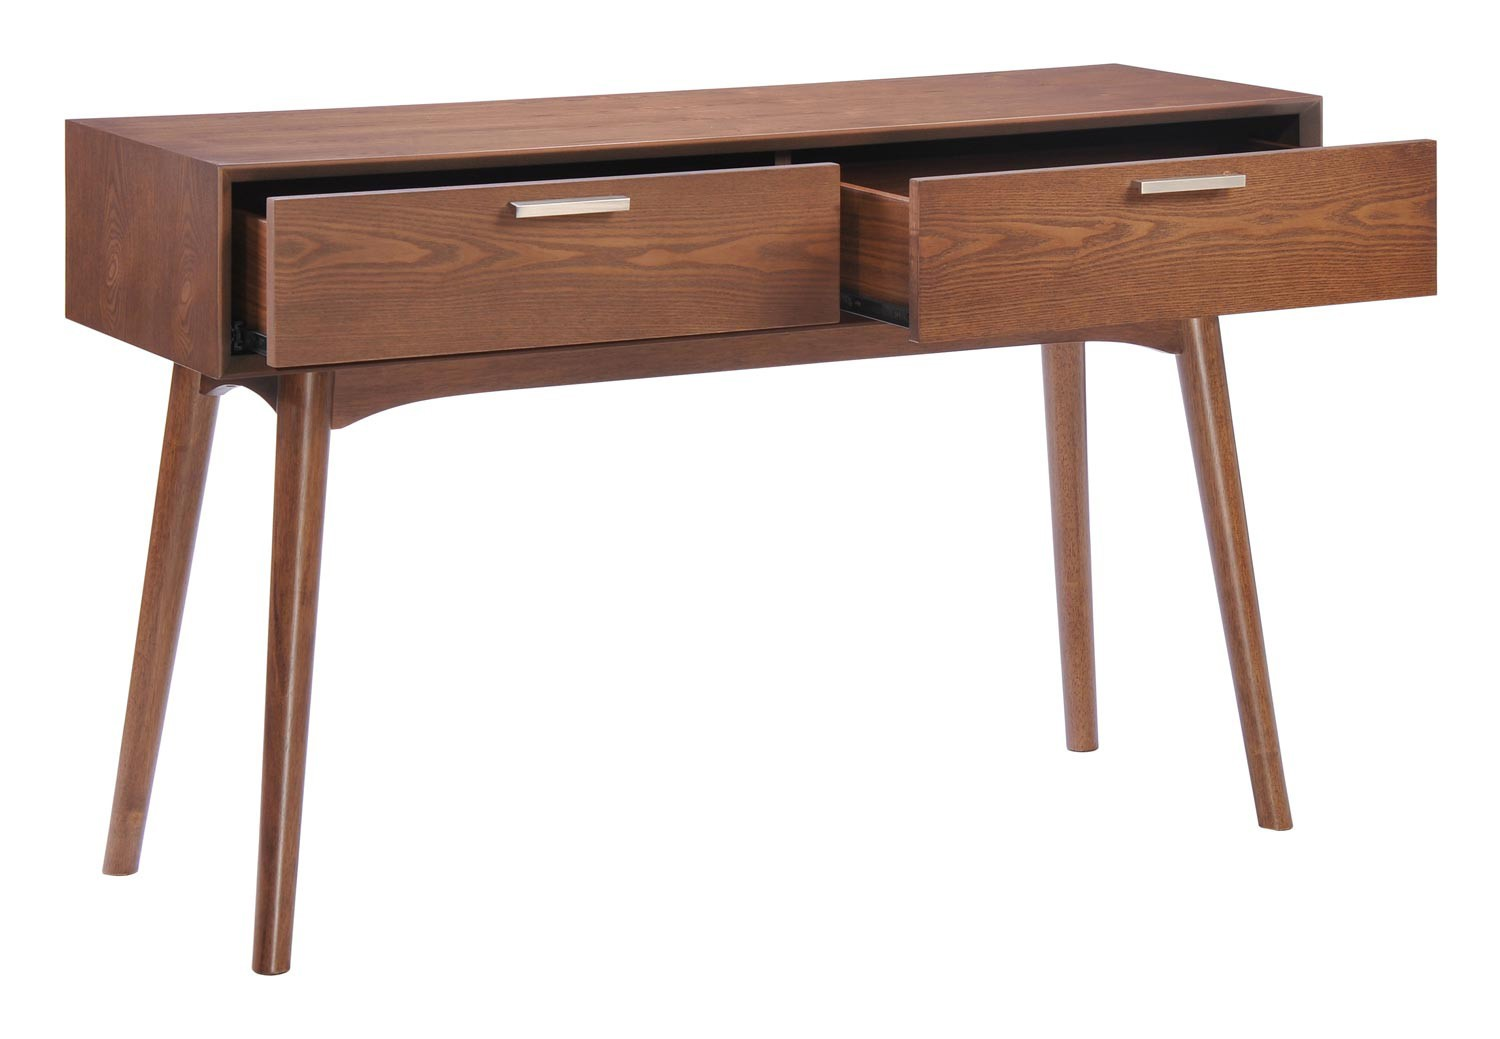 Zuo Modern Design District Console Table - Walnut